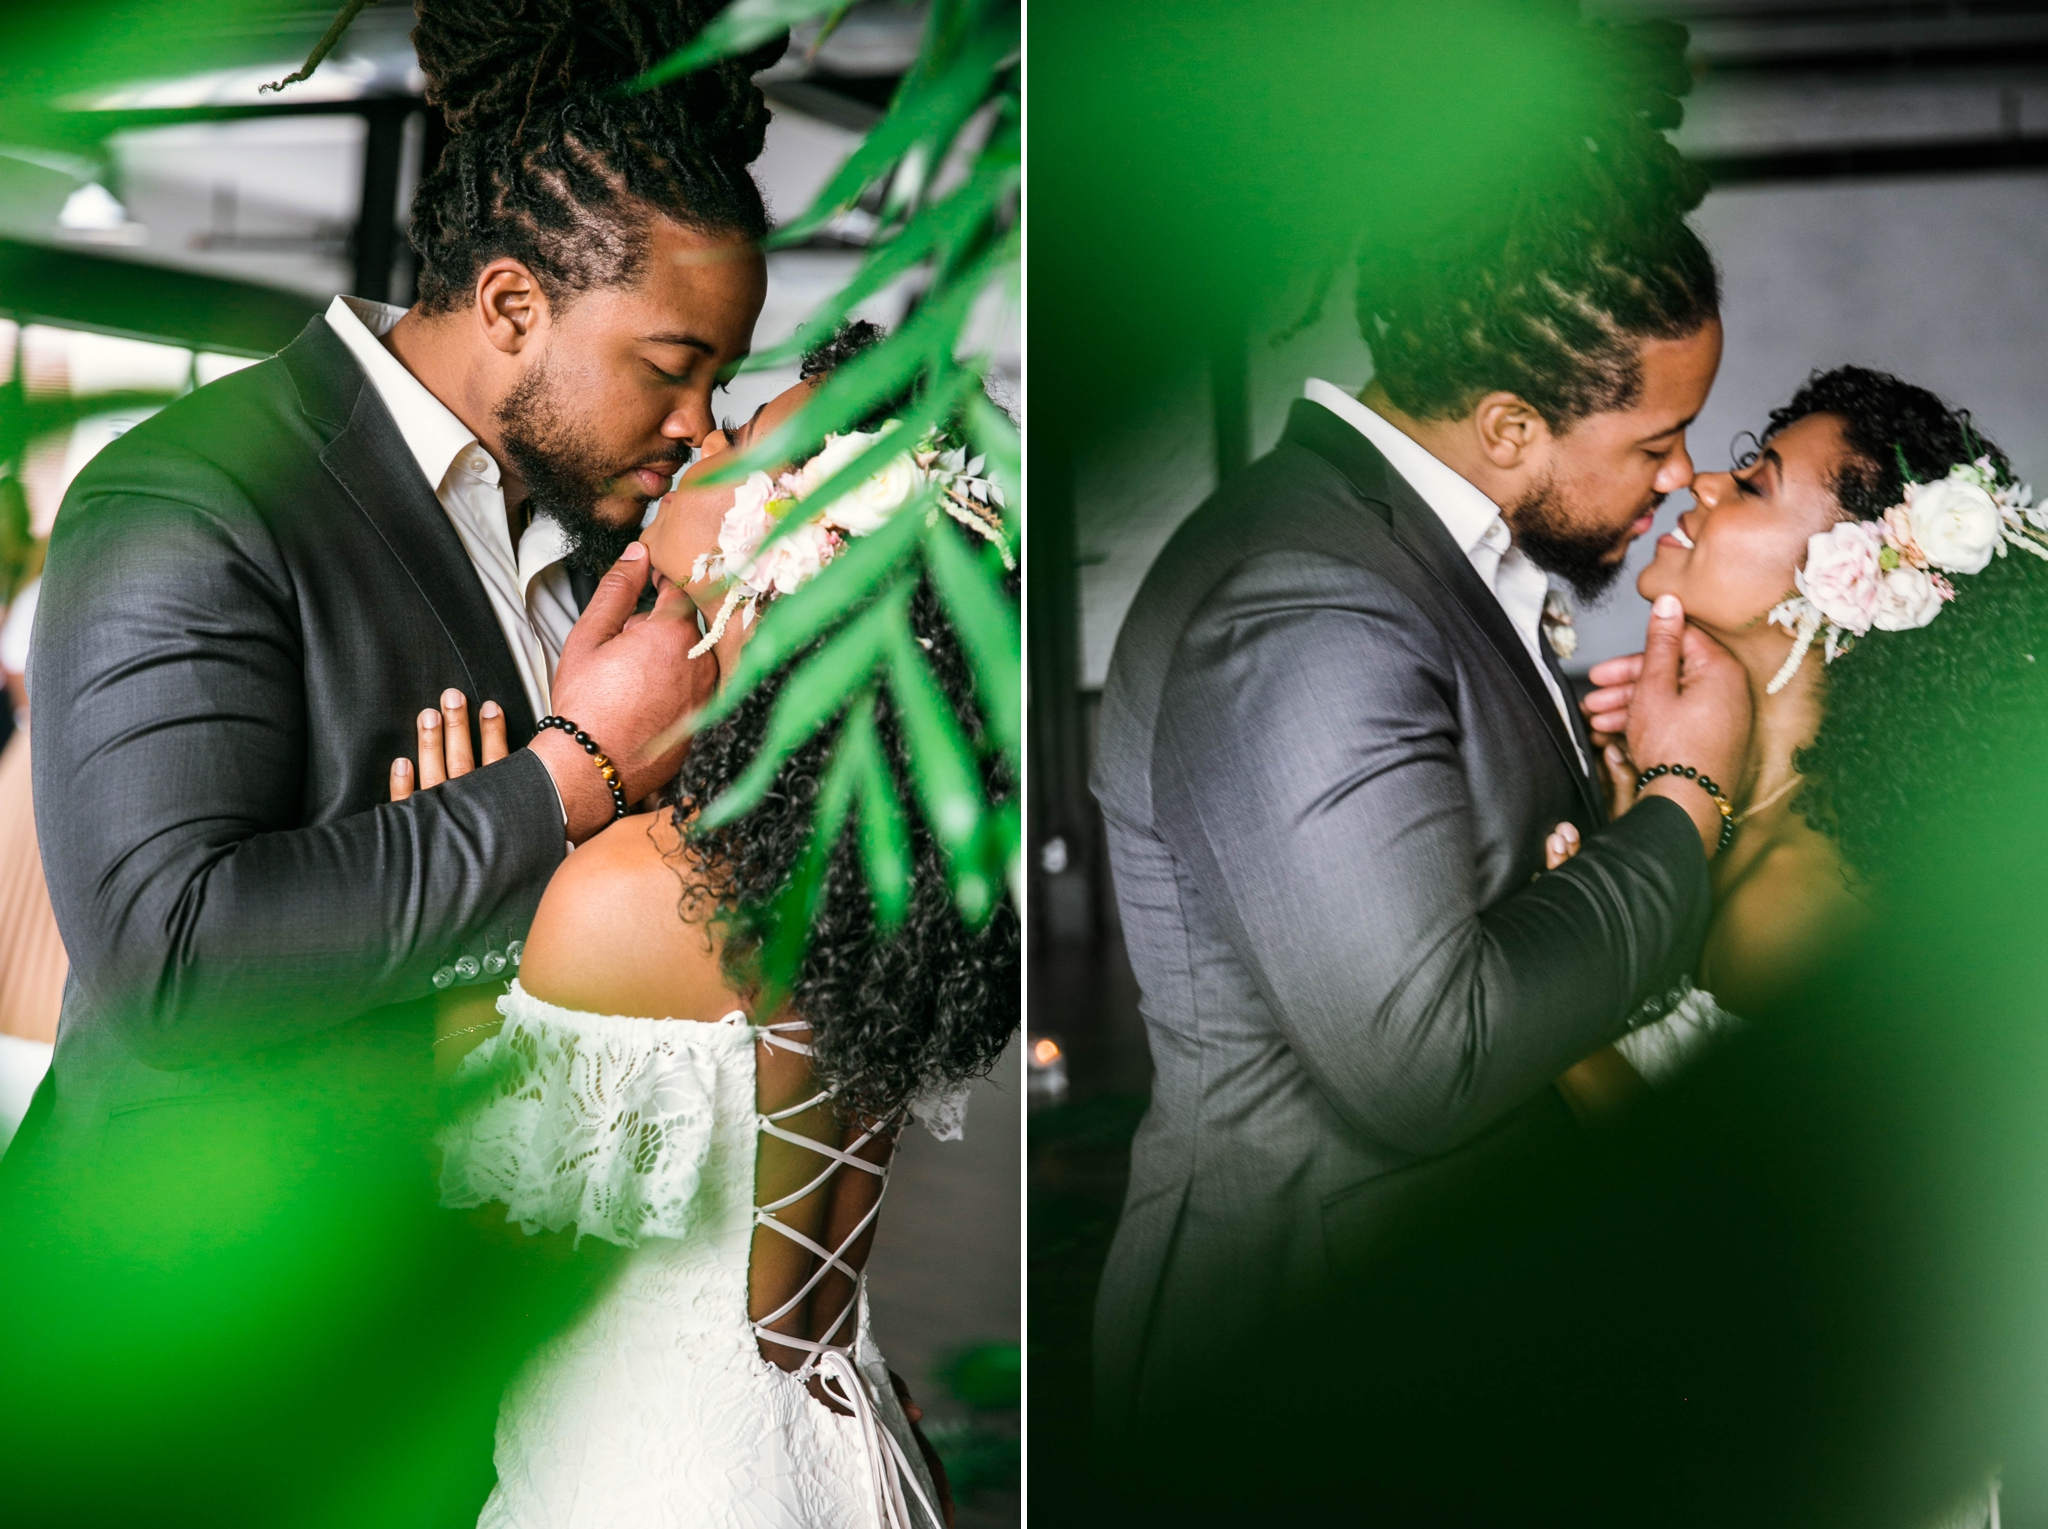 Indoor Natural Light Portraits of Bride and Groom - Tropical Boho Inspired Styled Shoot - Oahu Hawaii Wedding Photography